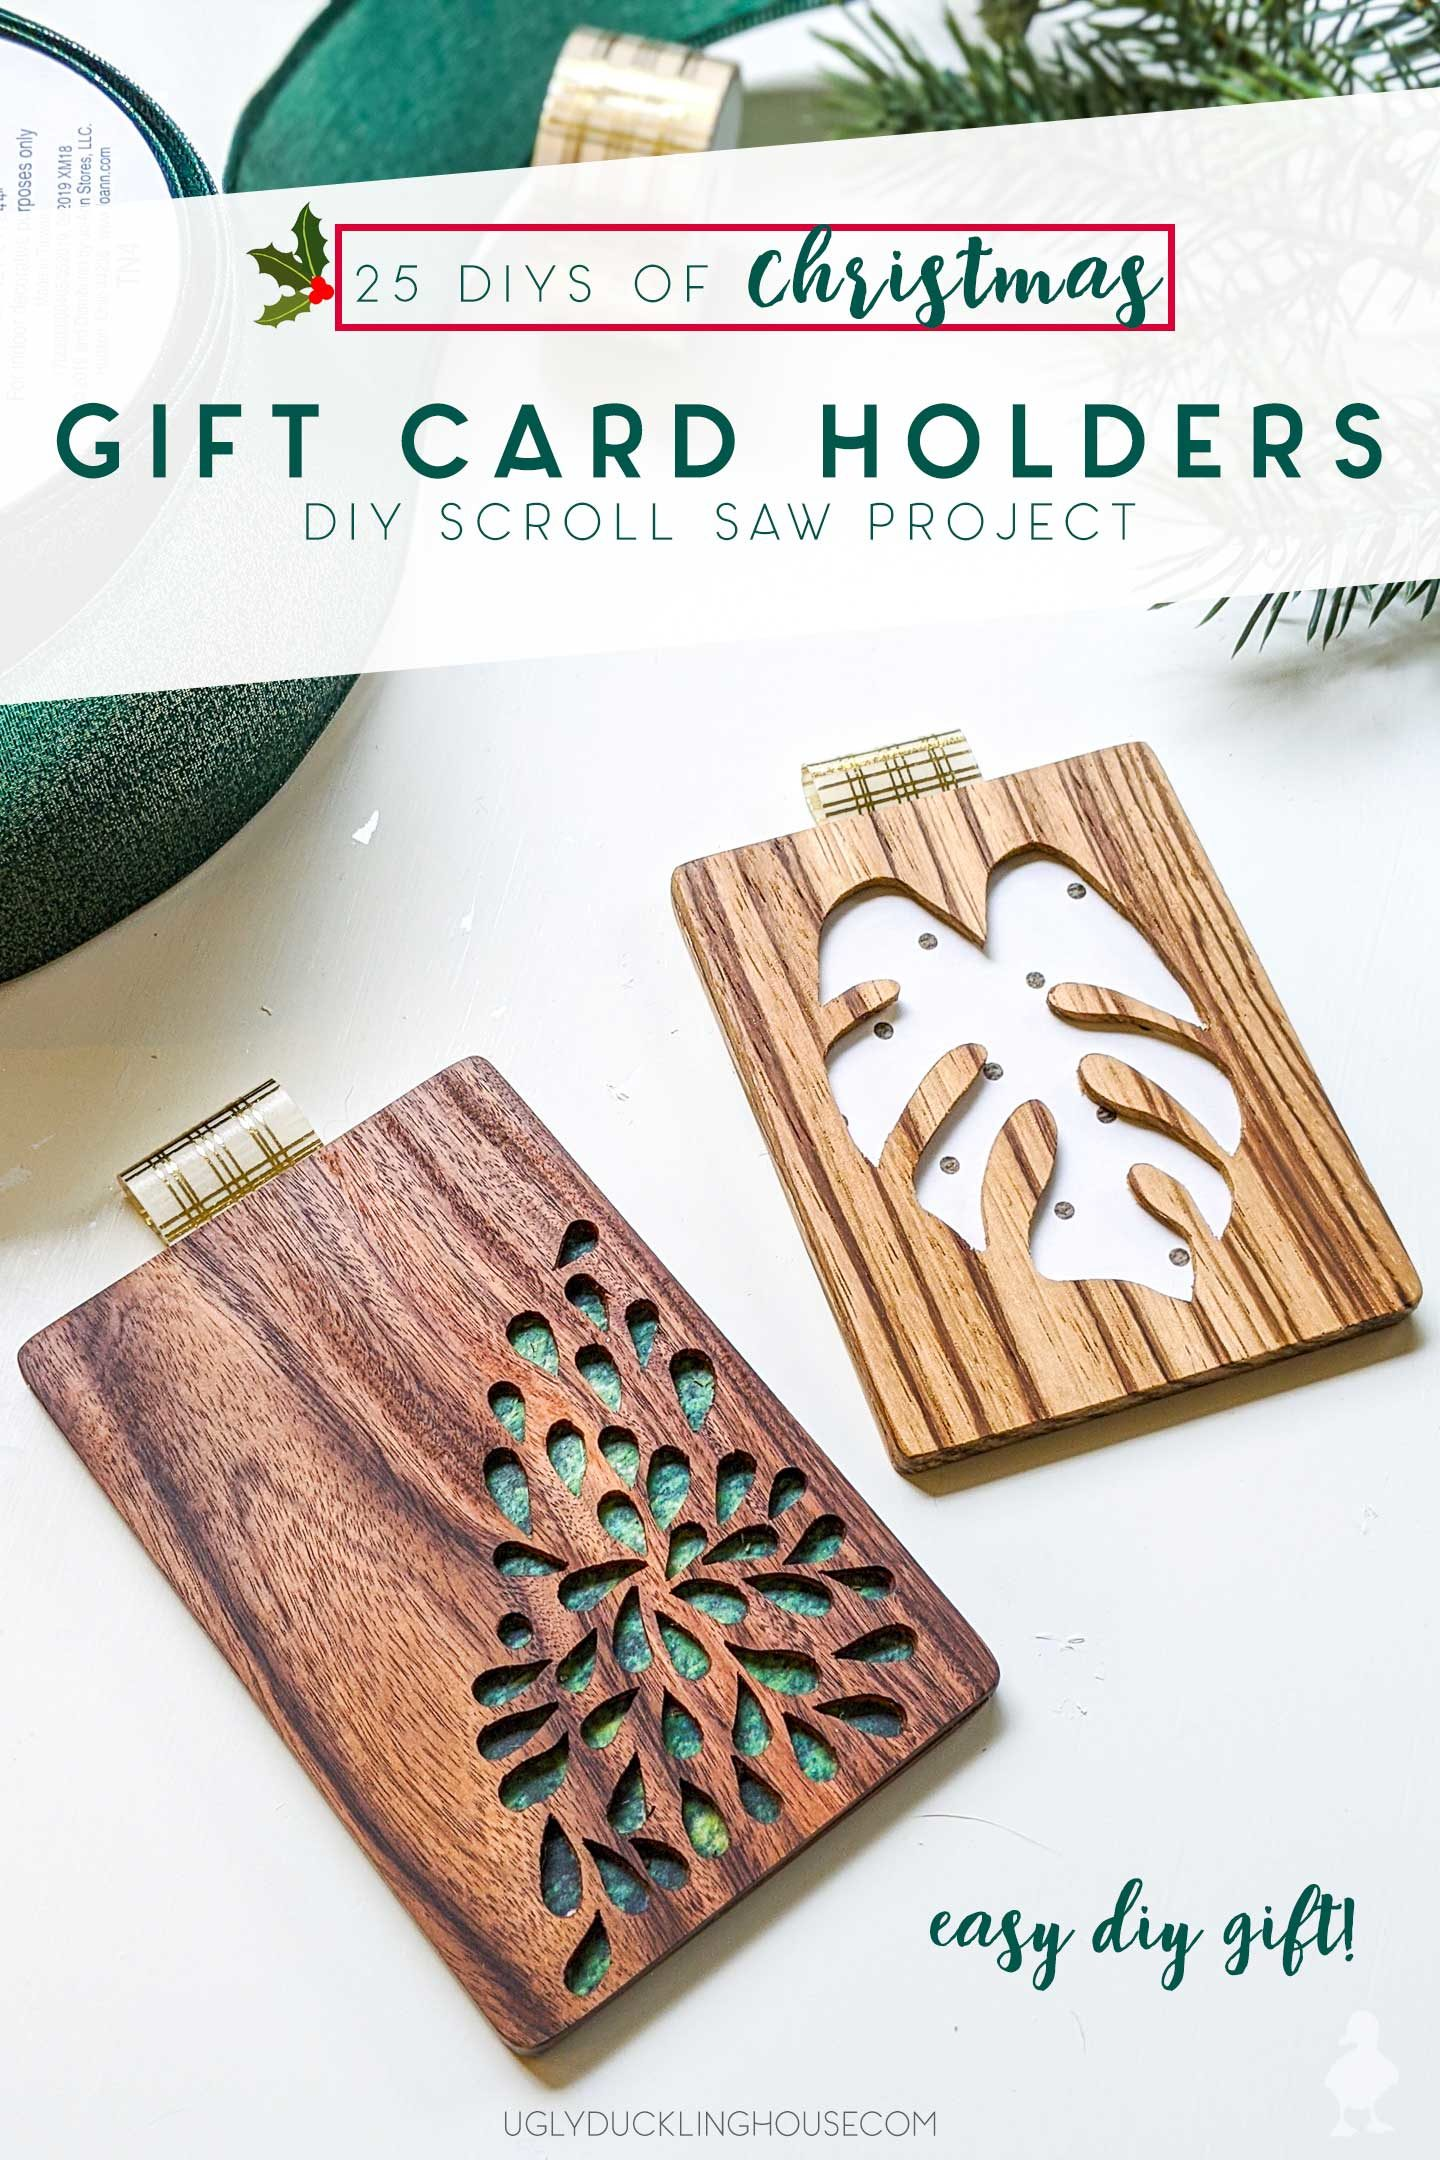 gift card holder diy scroll saw project